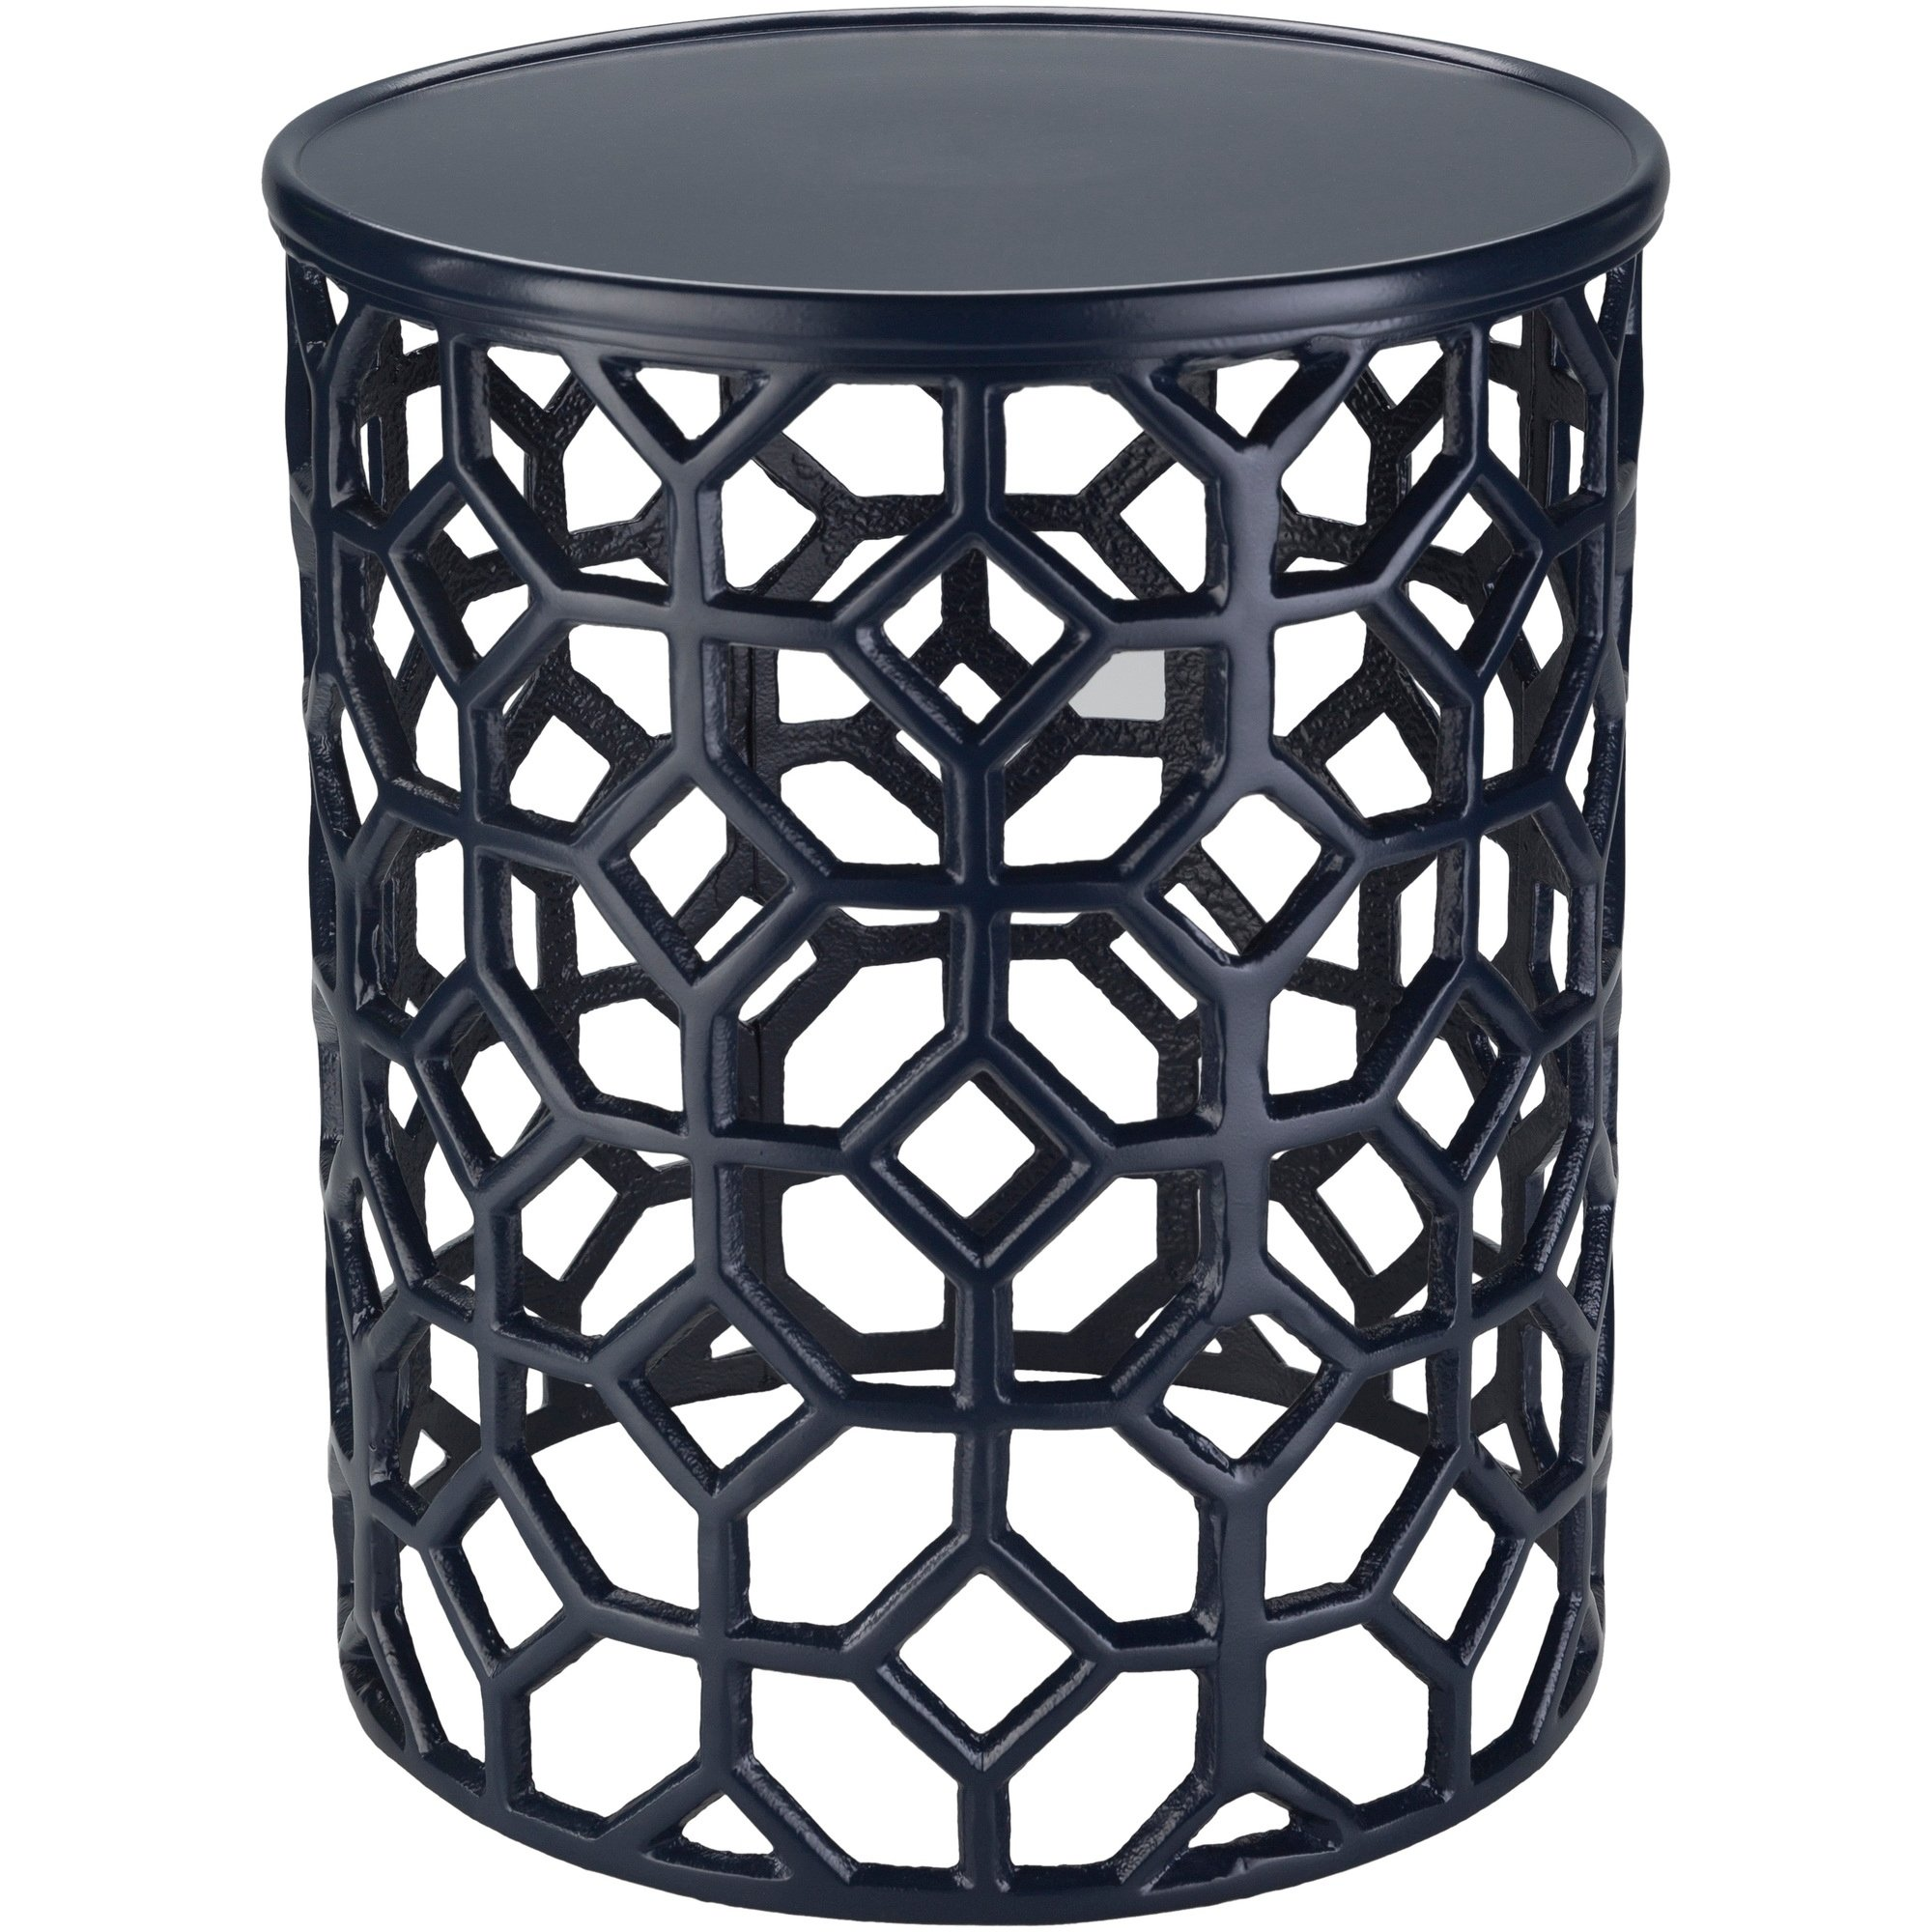 meuric navy transitional inch metal accent table free shipping today funky garden furniture harvest dining pottery barn white standing mirror chest small folding end behind couch